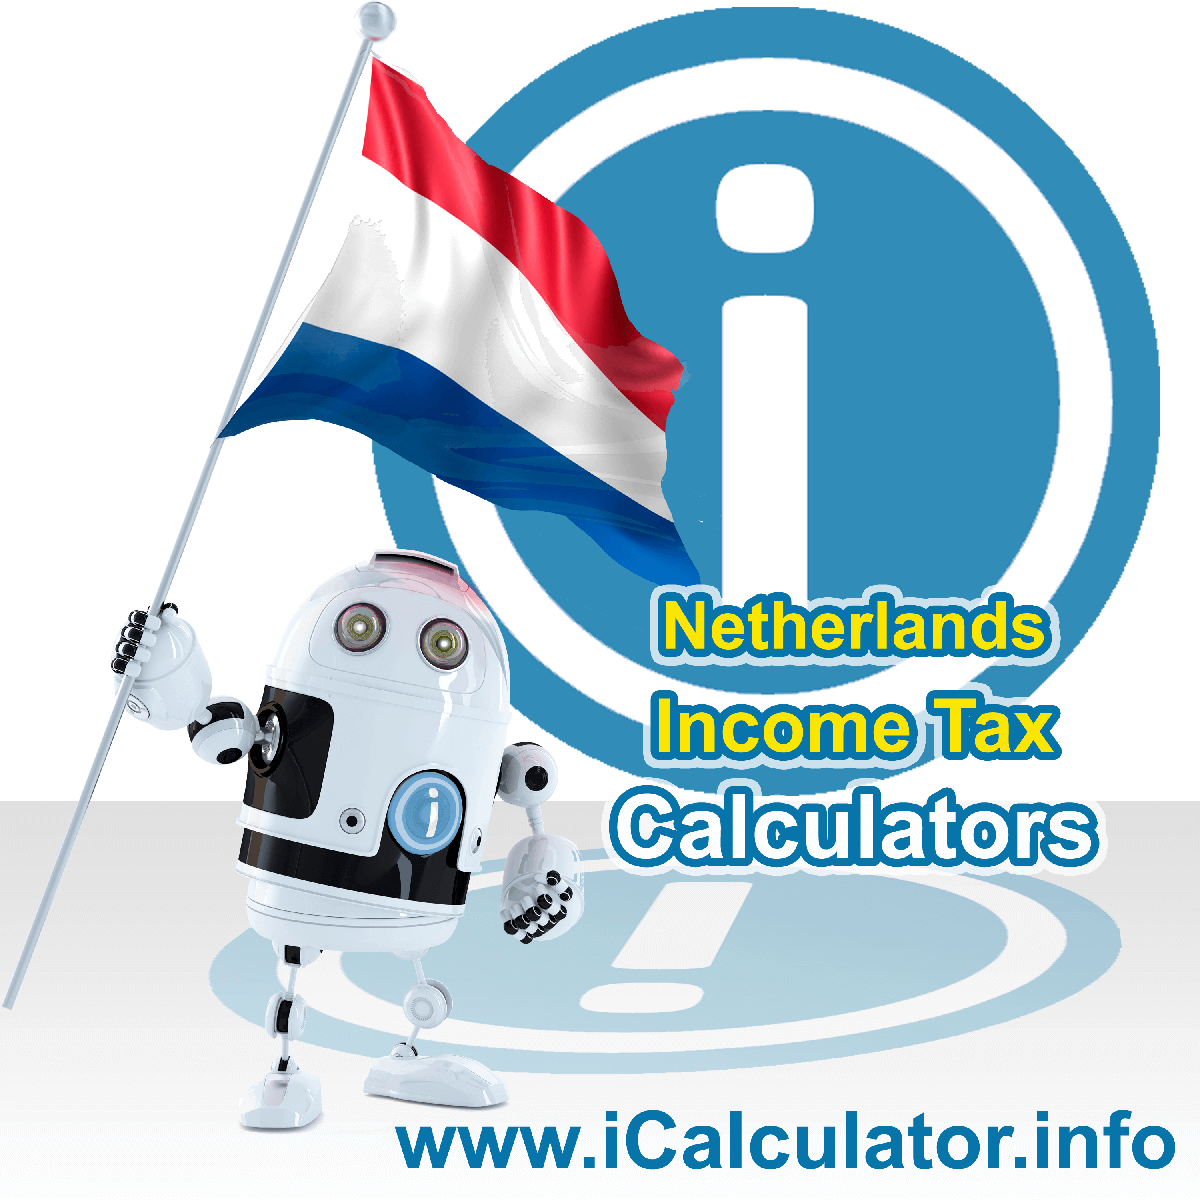 Netherlands Income Tax Calculator. This image shows a new employer in Netherlands calculating the annual payroll costs based on multiple payroll payments in one year in Netherlands using the Netherlands income tax calculator to understand their payroll costs in Netherlands in 2021